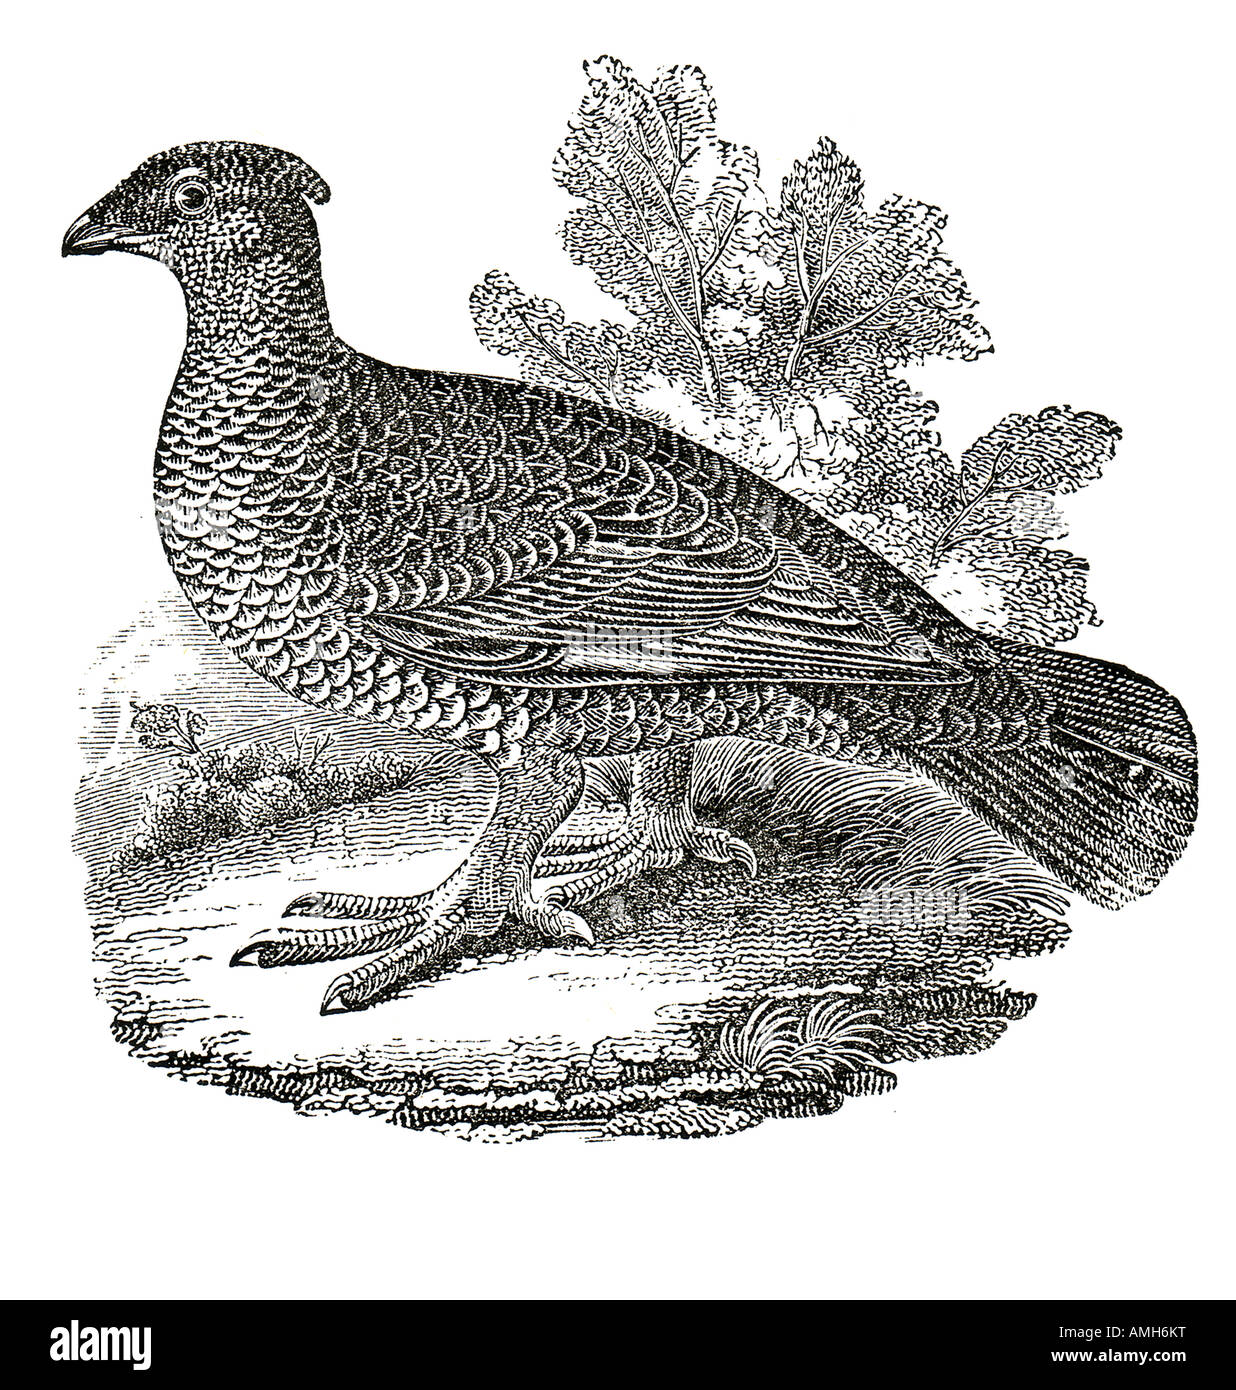 Blue Dusky Grouse Dendragapus obscurus forest dwelling native to North America Rocky Mountain Sooty Grouse fuliginosus Stock Photo